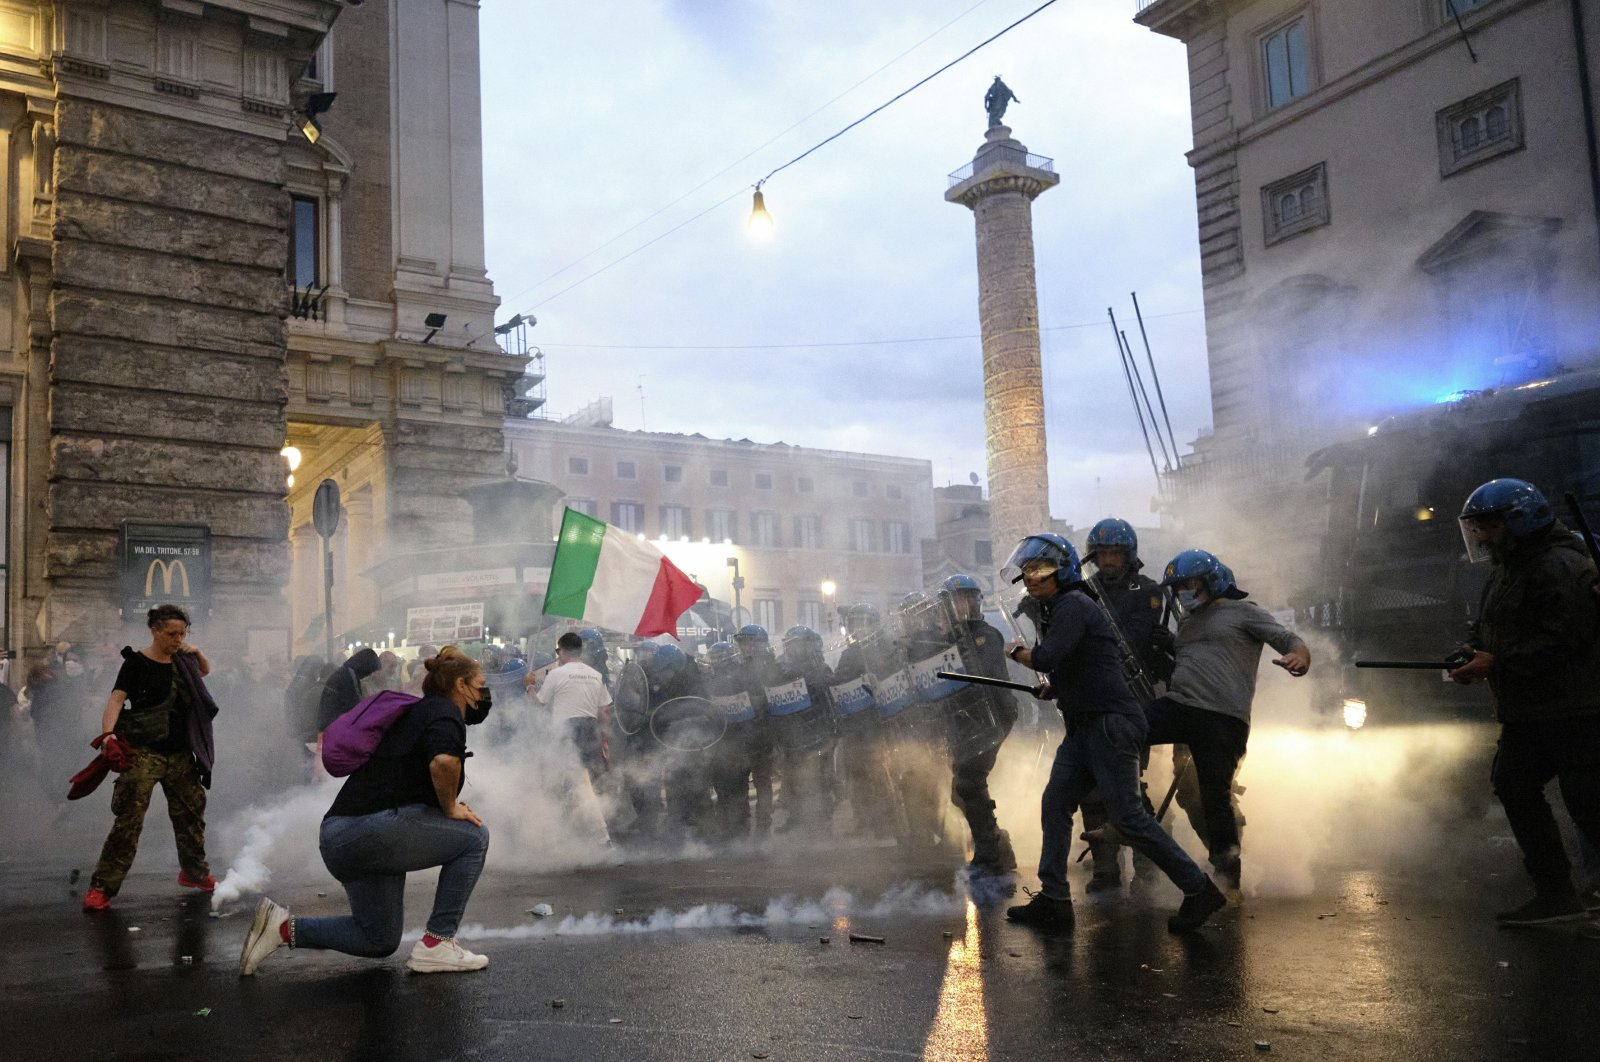 Demonstrators and police clash during a protest, in Rome, Italy, Oct. 9, 2021. (AP Photo)